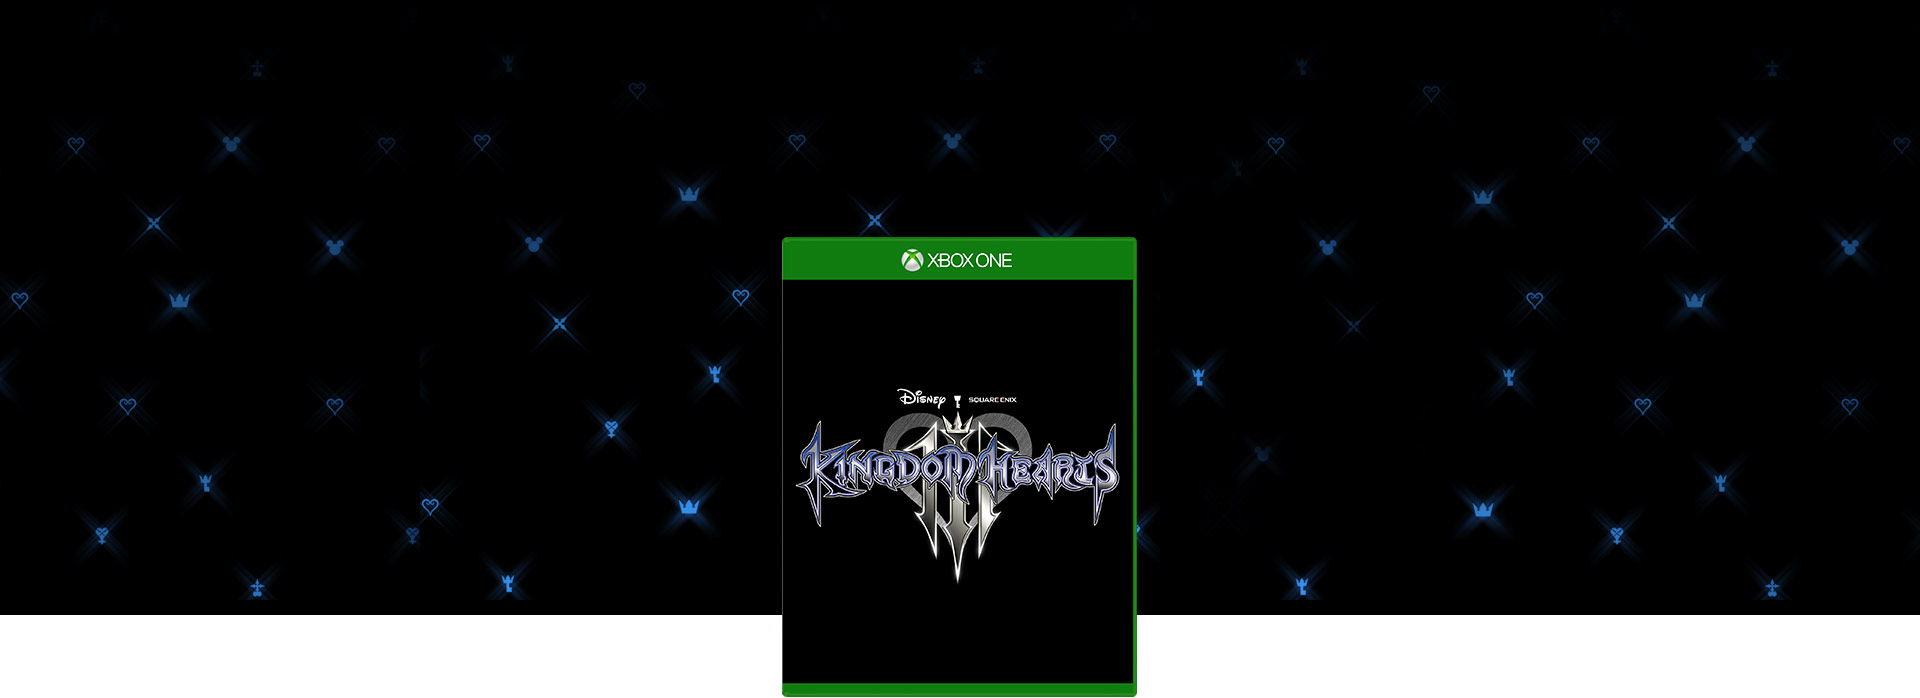 Kingdom Hearts Iii Xbox